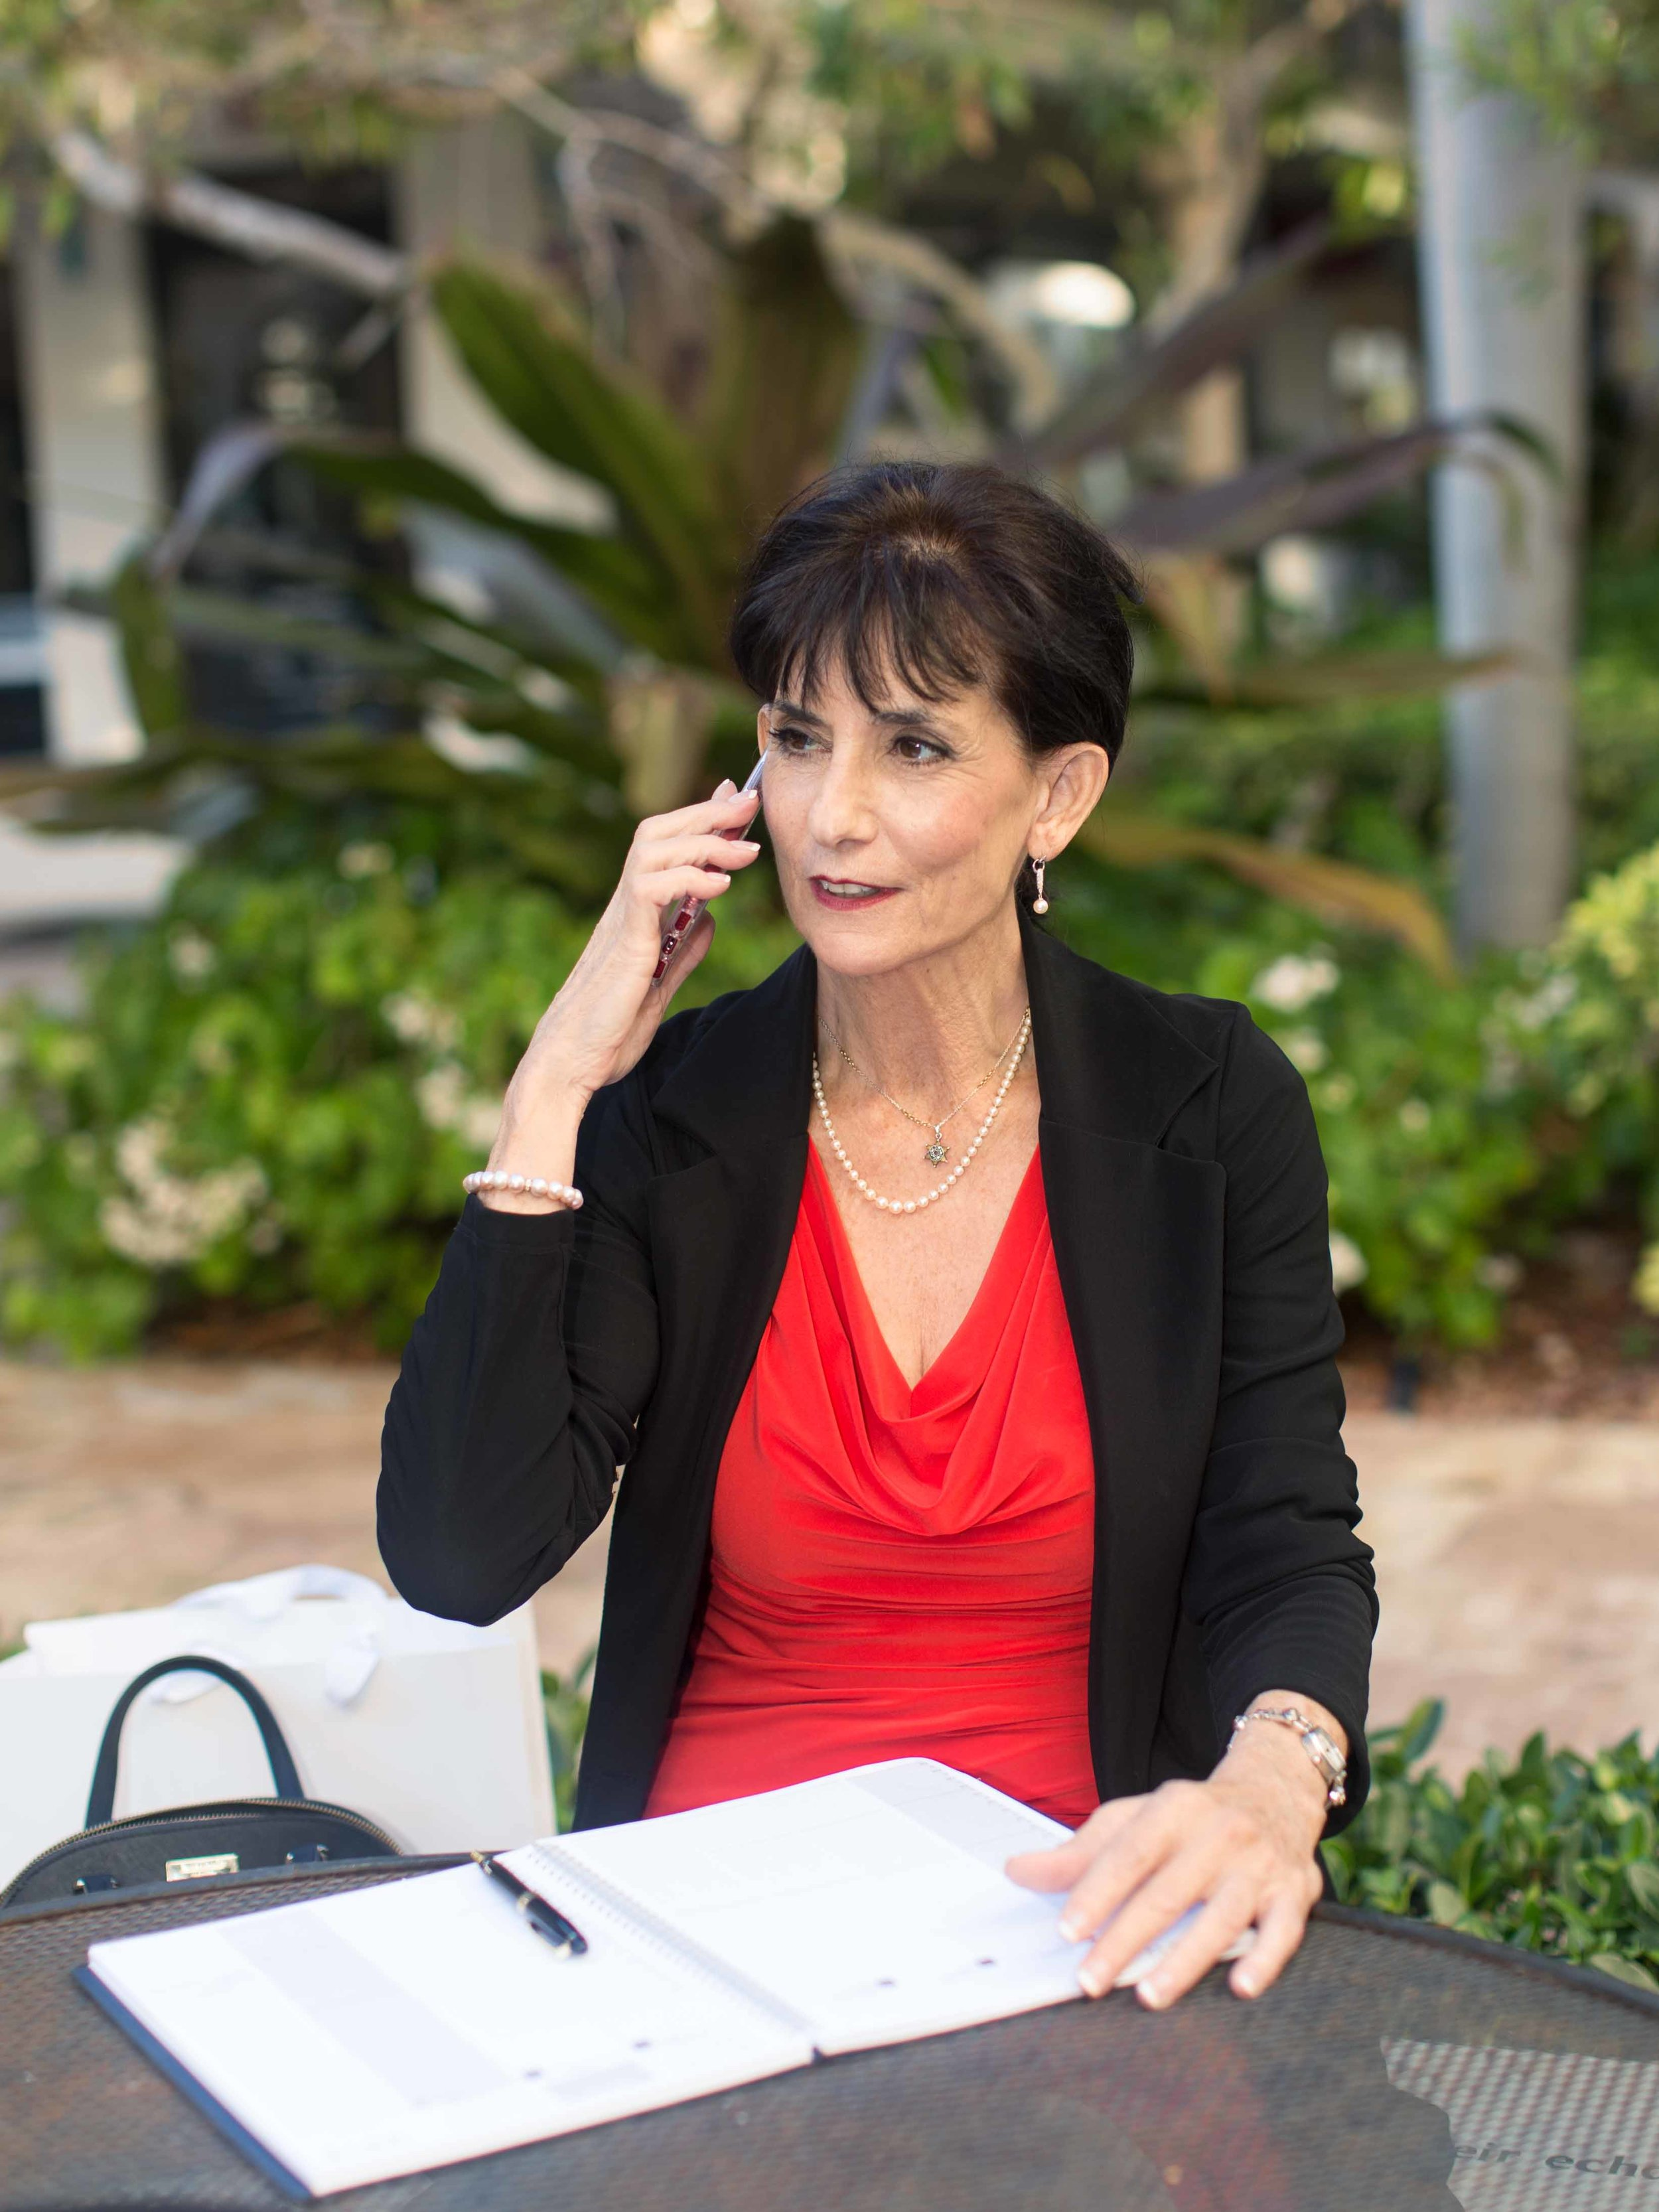 personal-branding-photography-realtor-red-dress-black-blazer-fort-lauderdale-south-florida